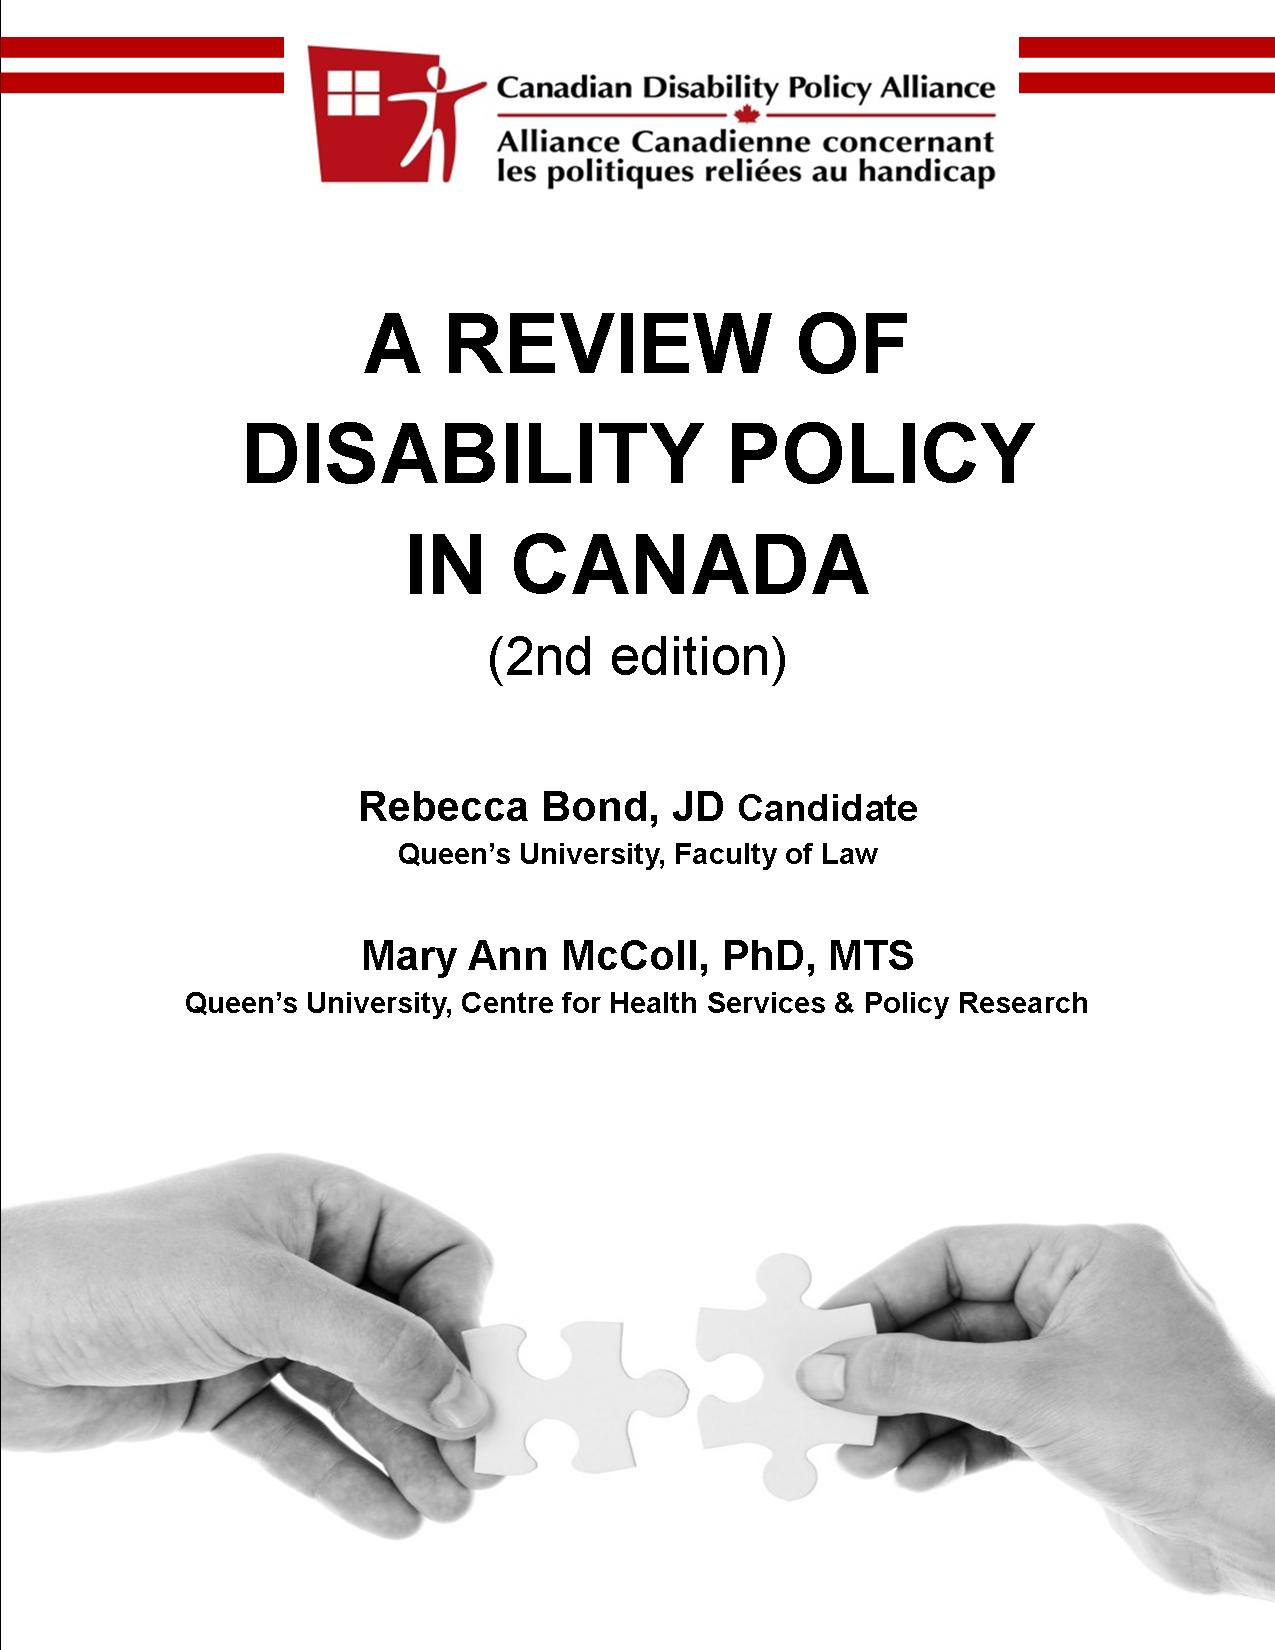 A Review of Disability Policy in Canada 2013 report cover